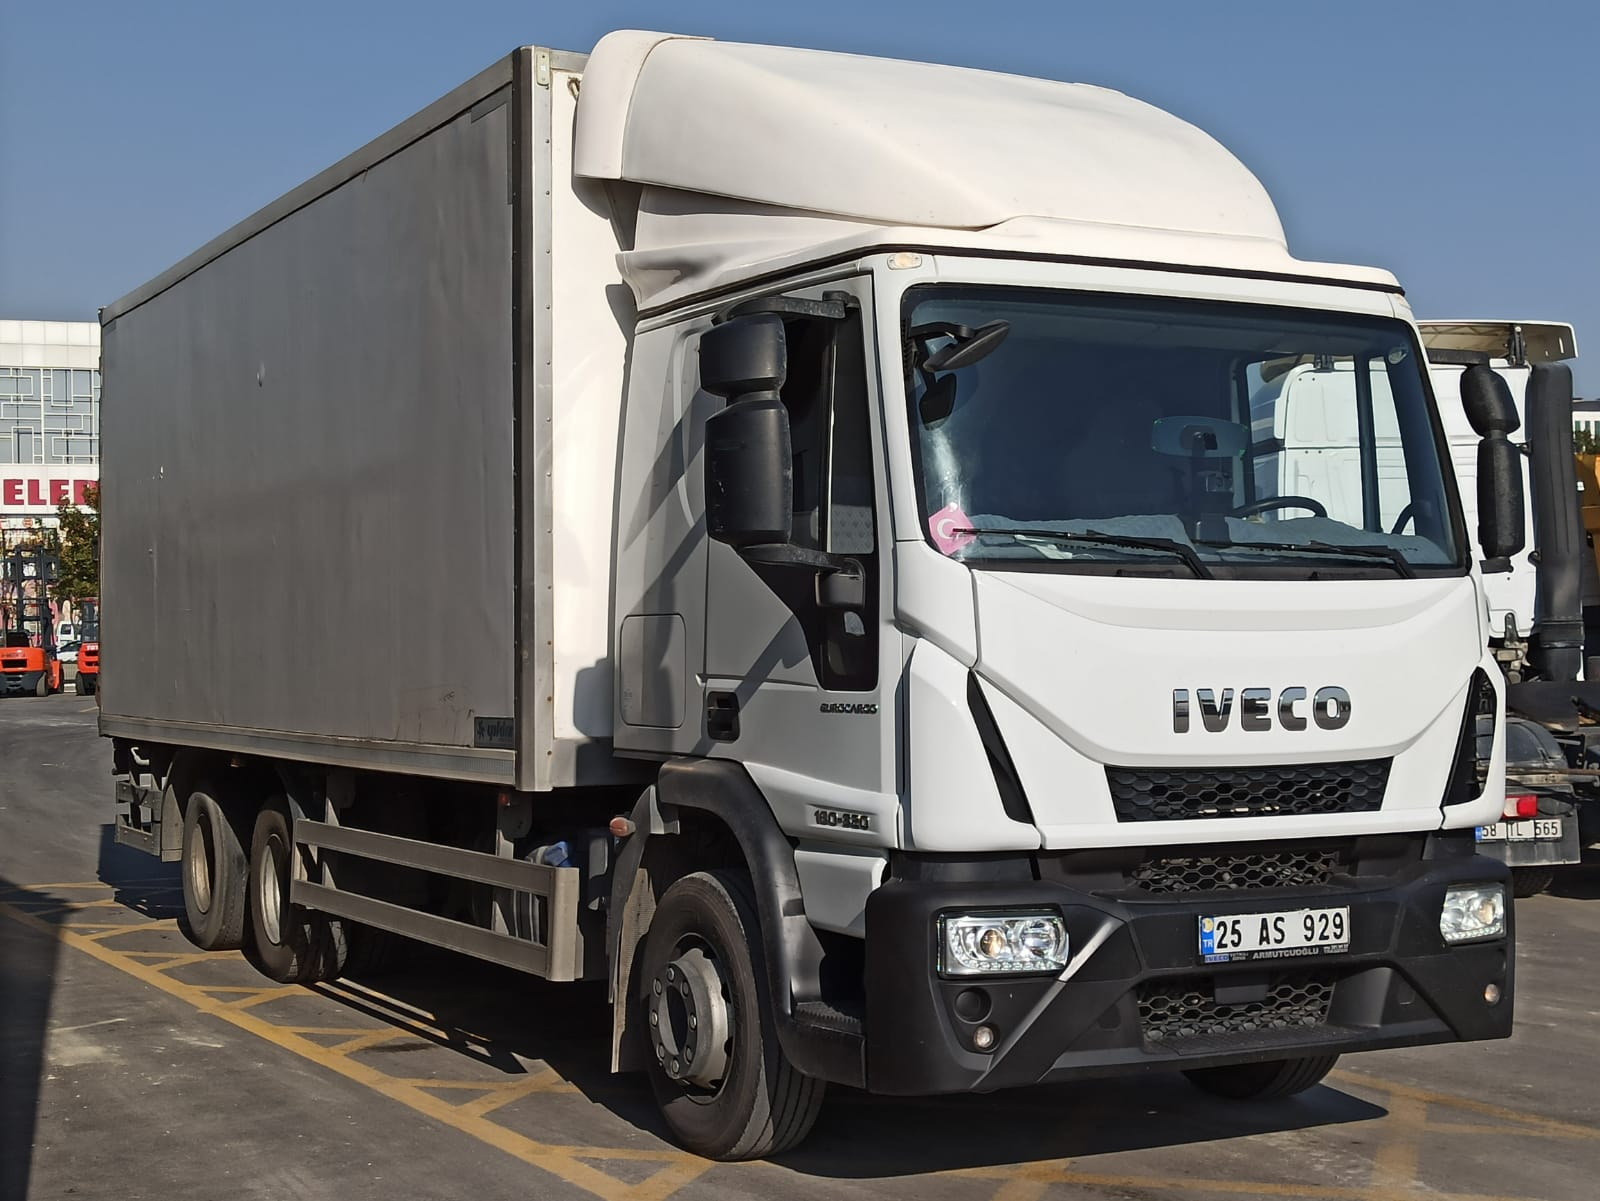 2019 IVECO EUROCARGO 160-320 REFRIGERATED VEHICLE  - Erçal Trucks